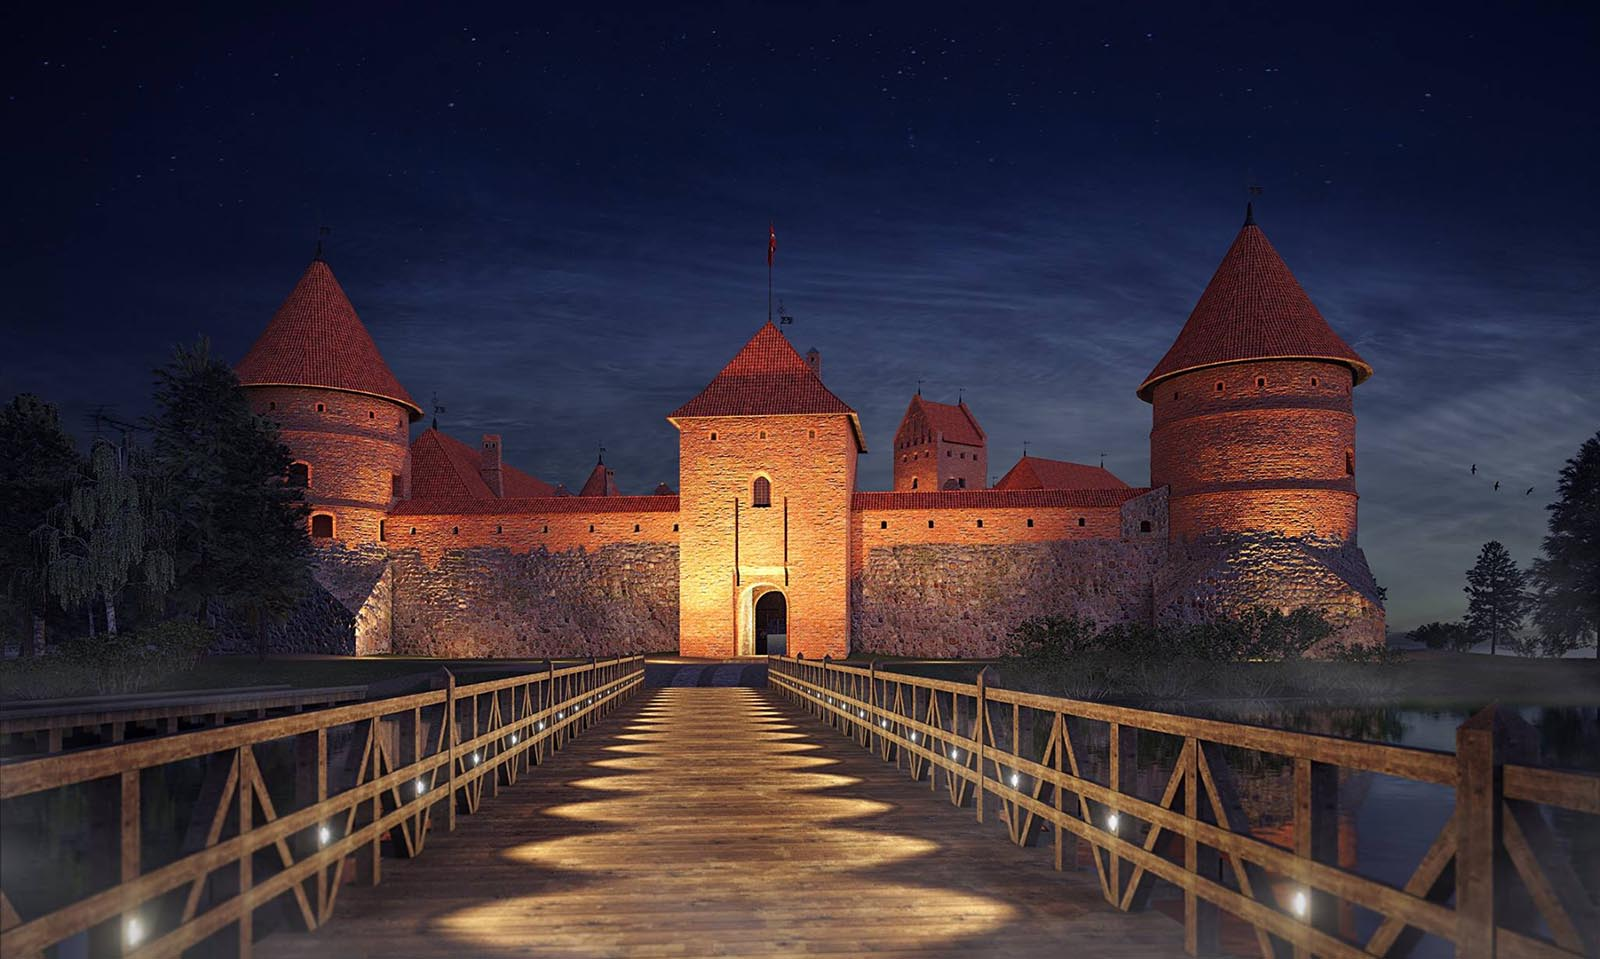 3D visualizations- render of a Trakai island castle-4